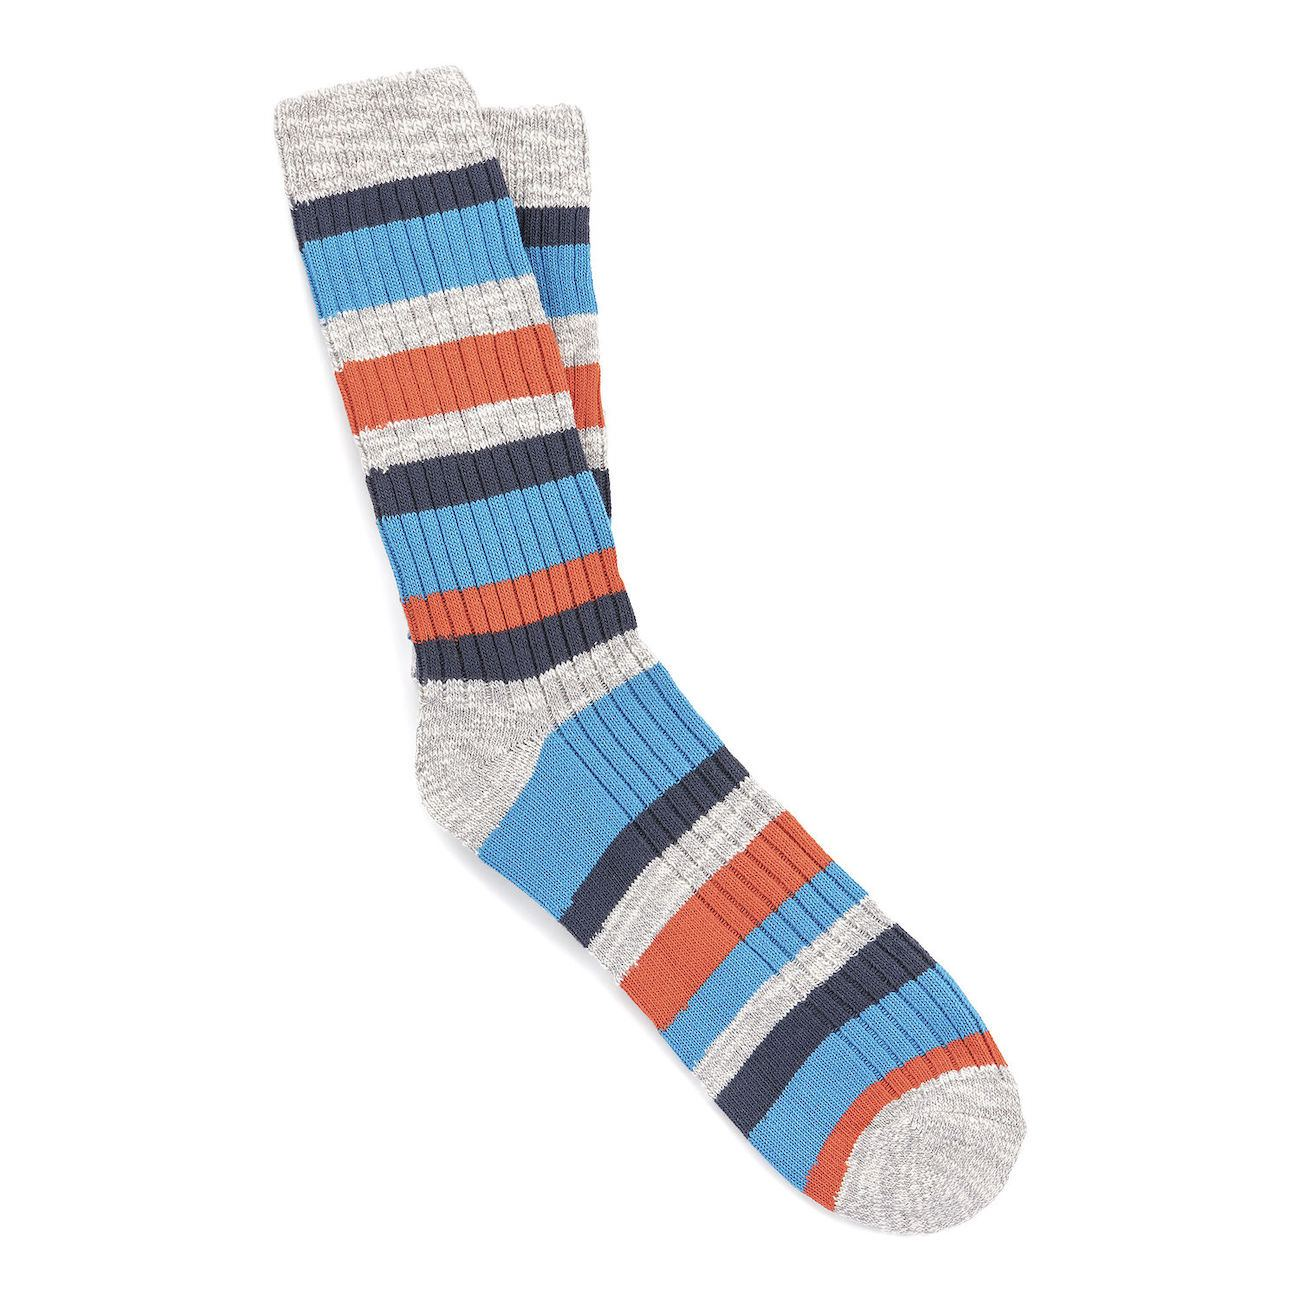 Birkenstock Socks, Slub Stripes M, Grey mel, 42-44 EU Socks Birkenstock Socks Grey mel 42-44 EU